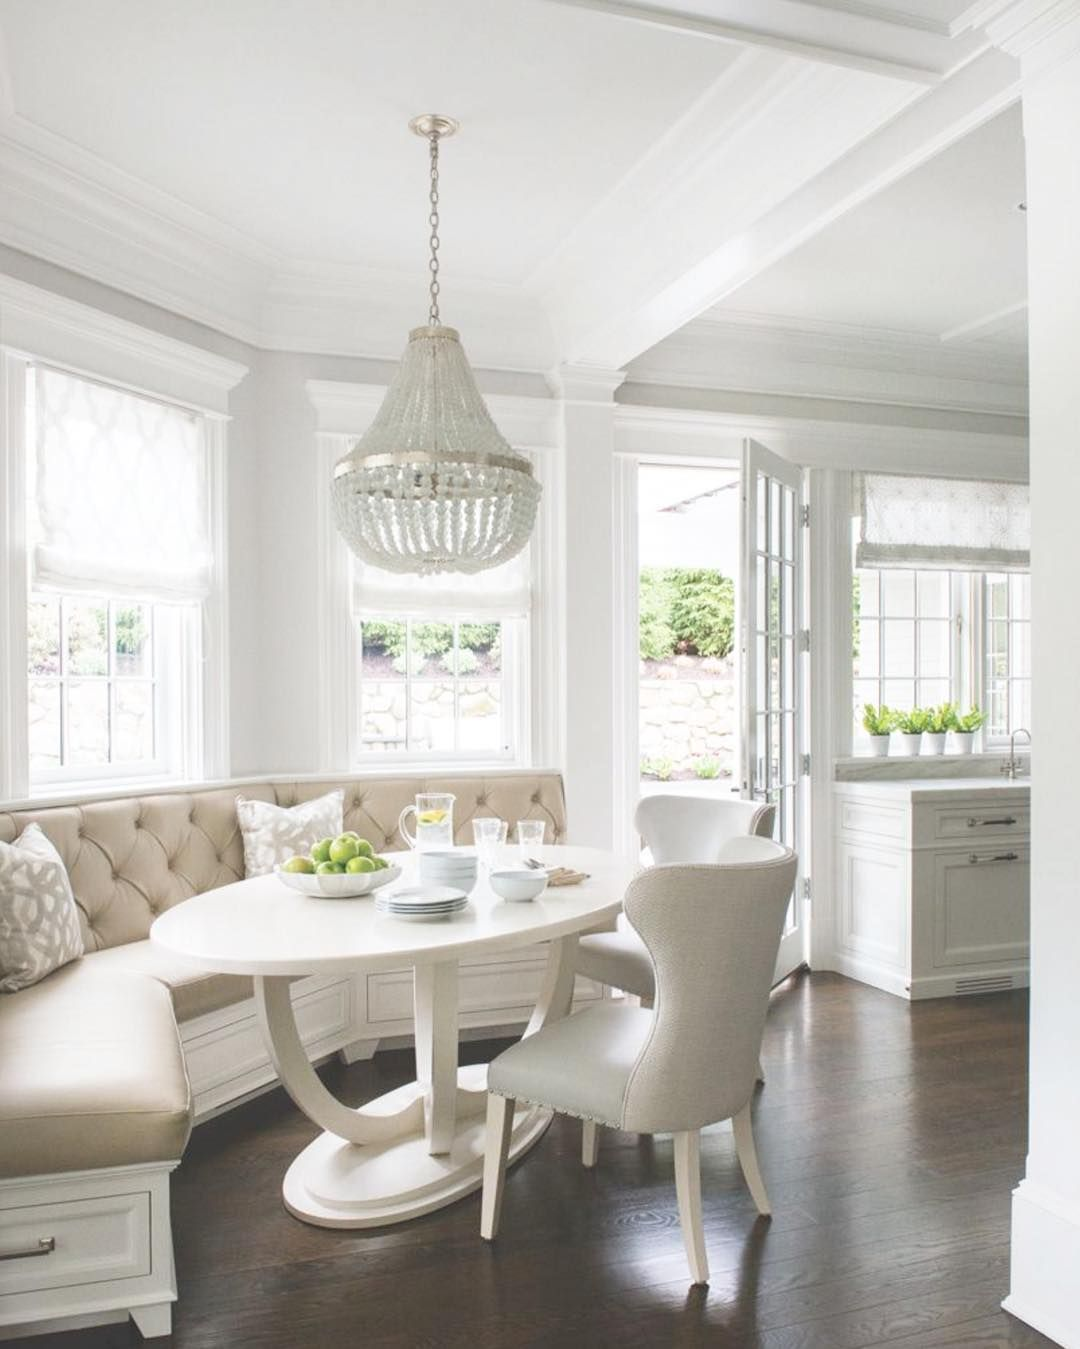 Heading Back To Work After The Long Weekend Can Be Tough So We Thought A Long Narrow Living Room Dining Nook